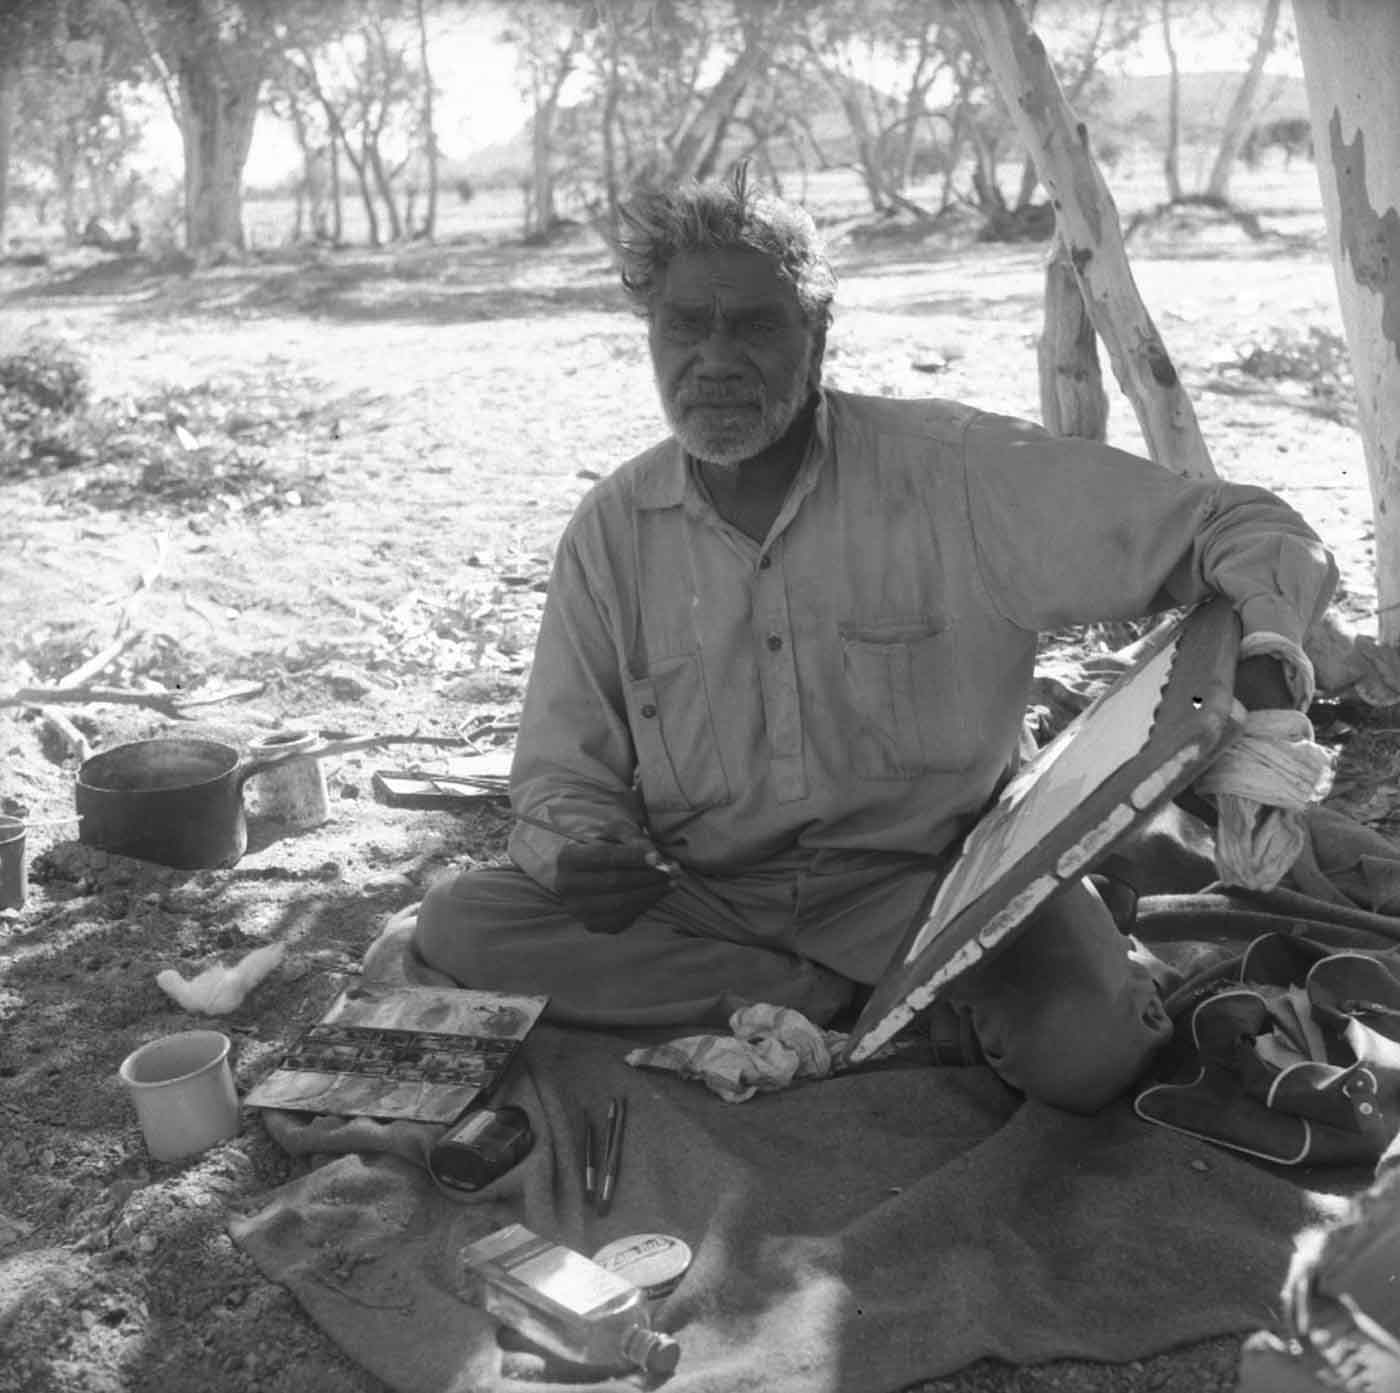 Black and white photo of a man sitting on the ground and painting in bush land.